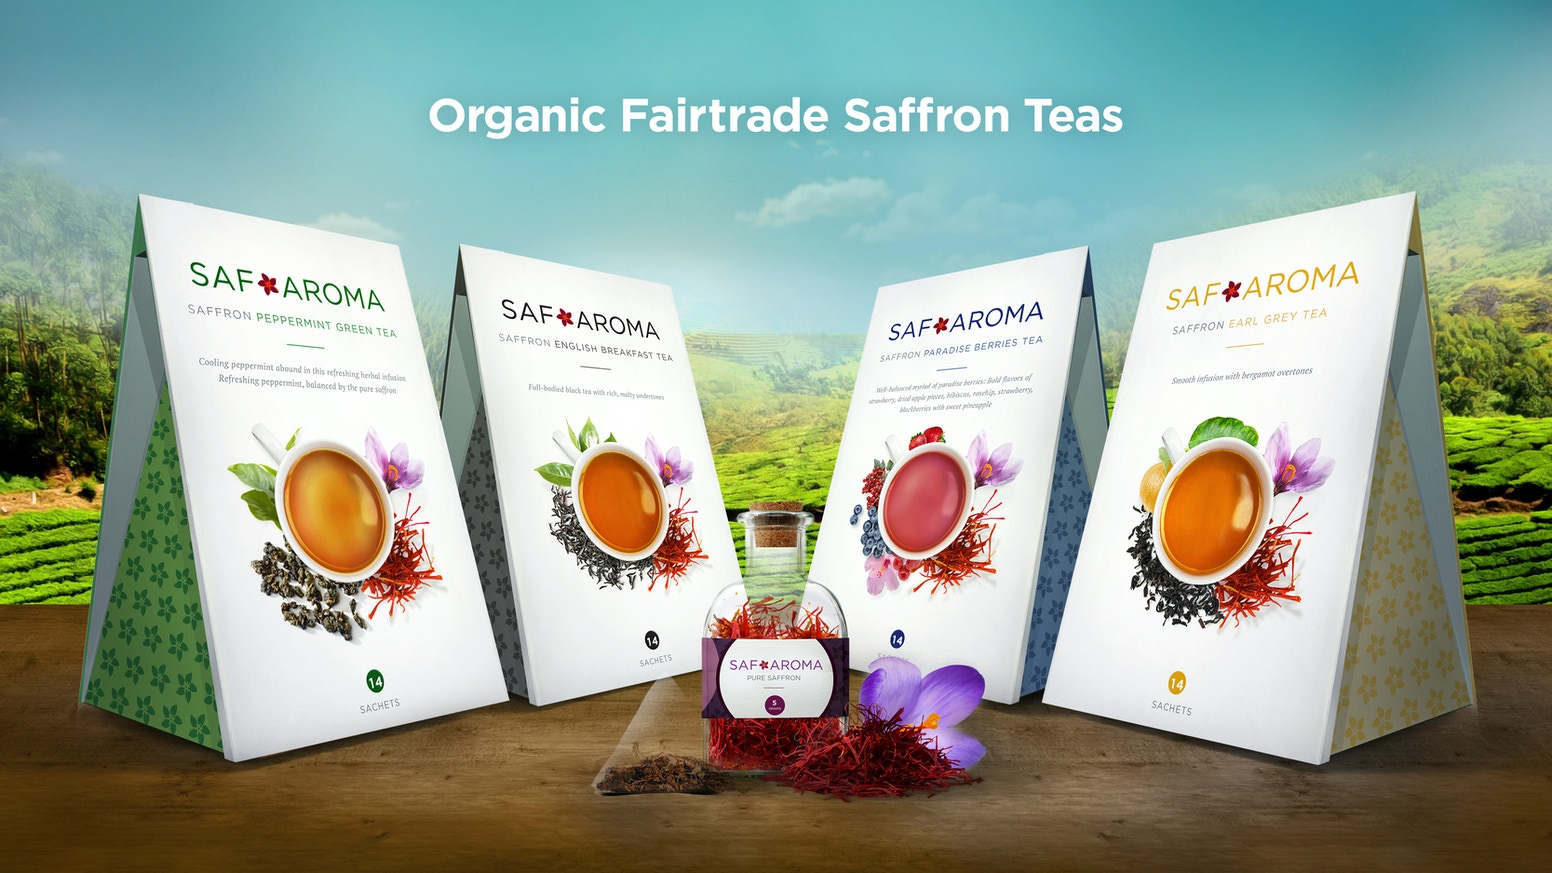 You get fresh & finest quality saffron for cooking & organic saffron teas by elevating women farmers using fairtrade. One cup at a time